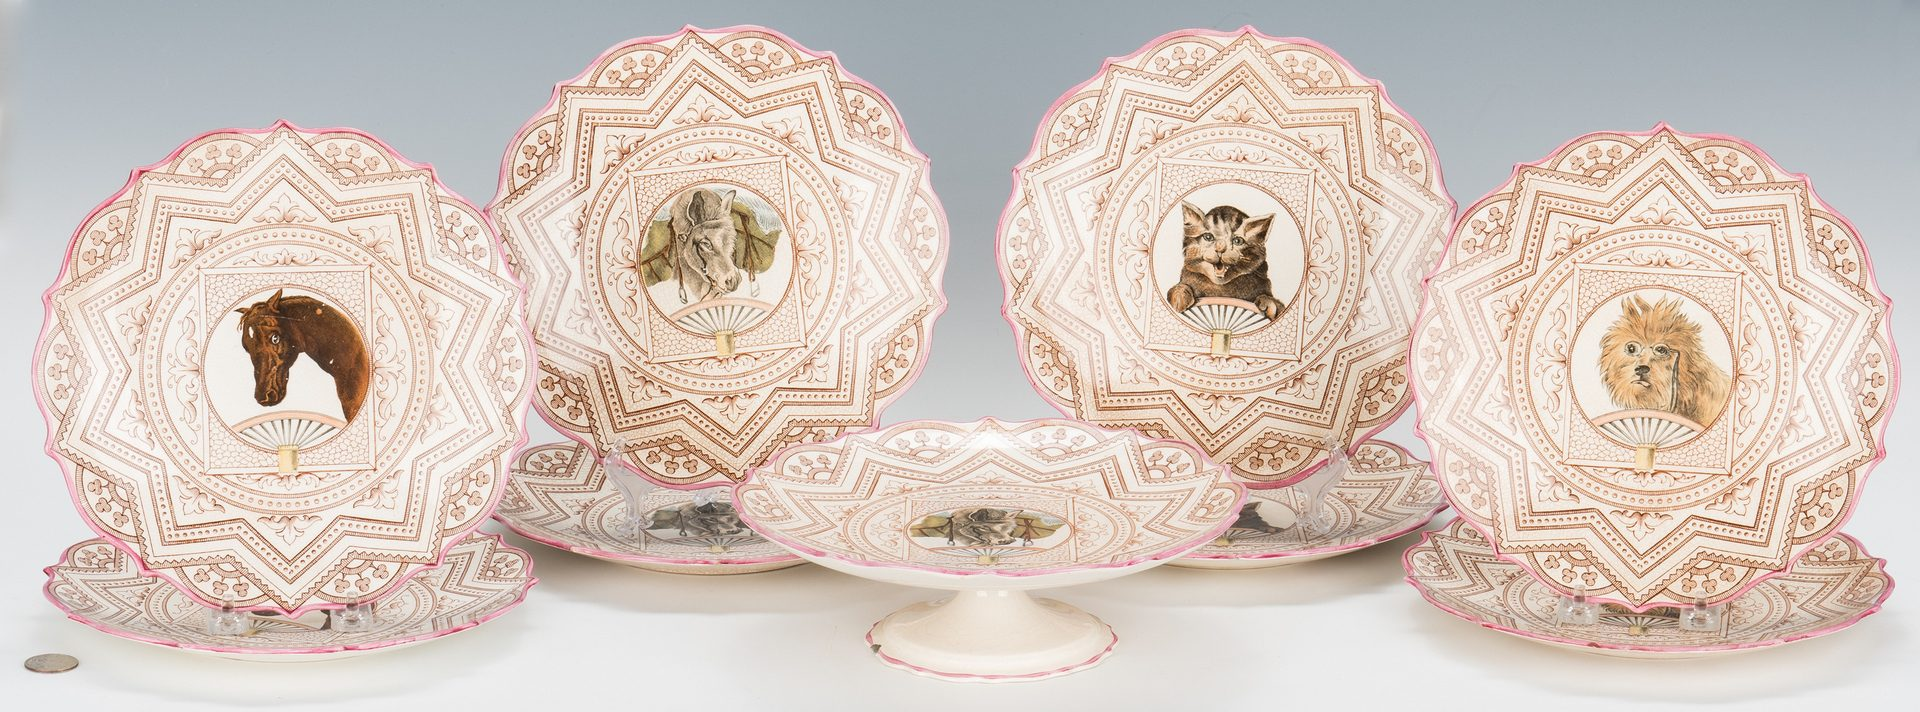 Lot 332: Animal Themed Creamware Dessert Set inc. Horse, Cats